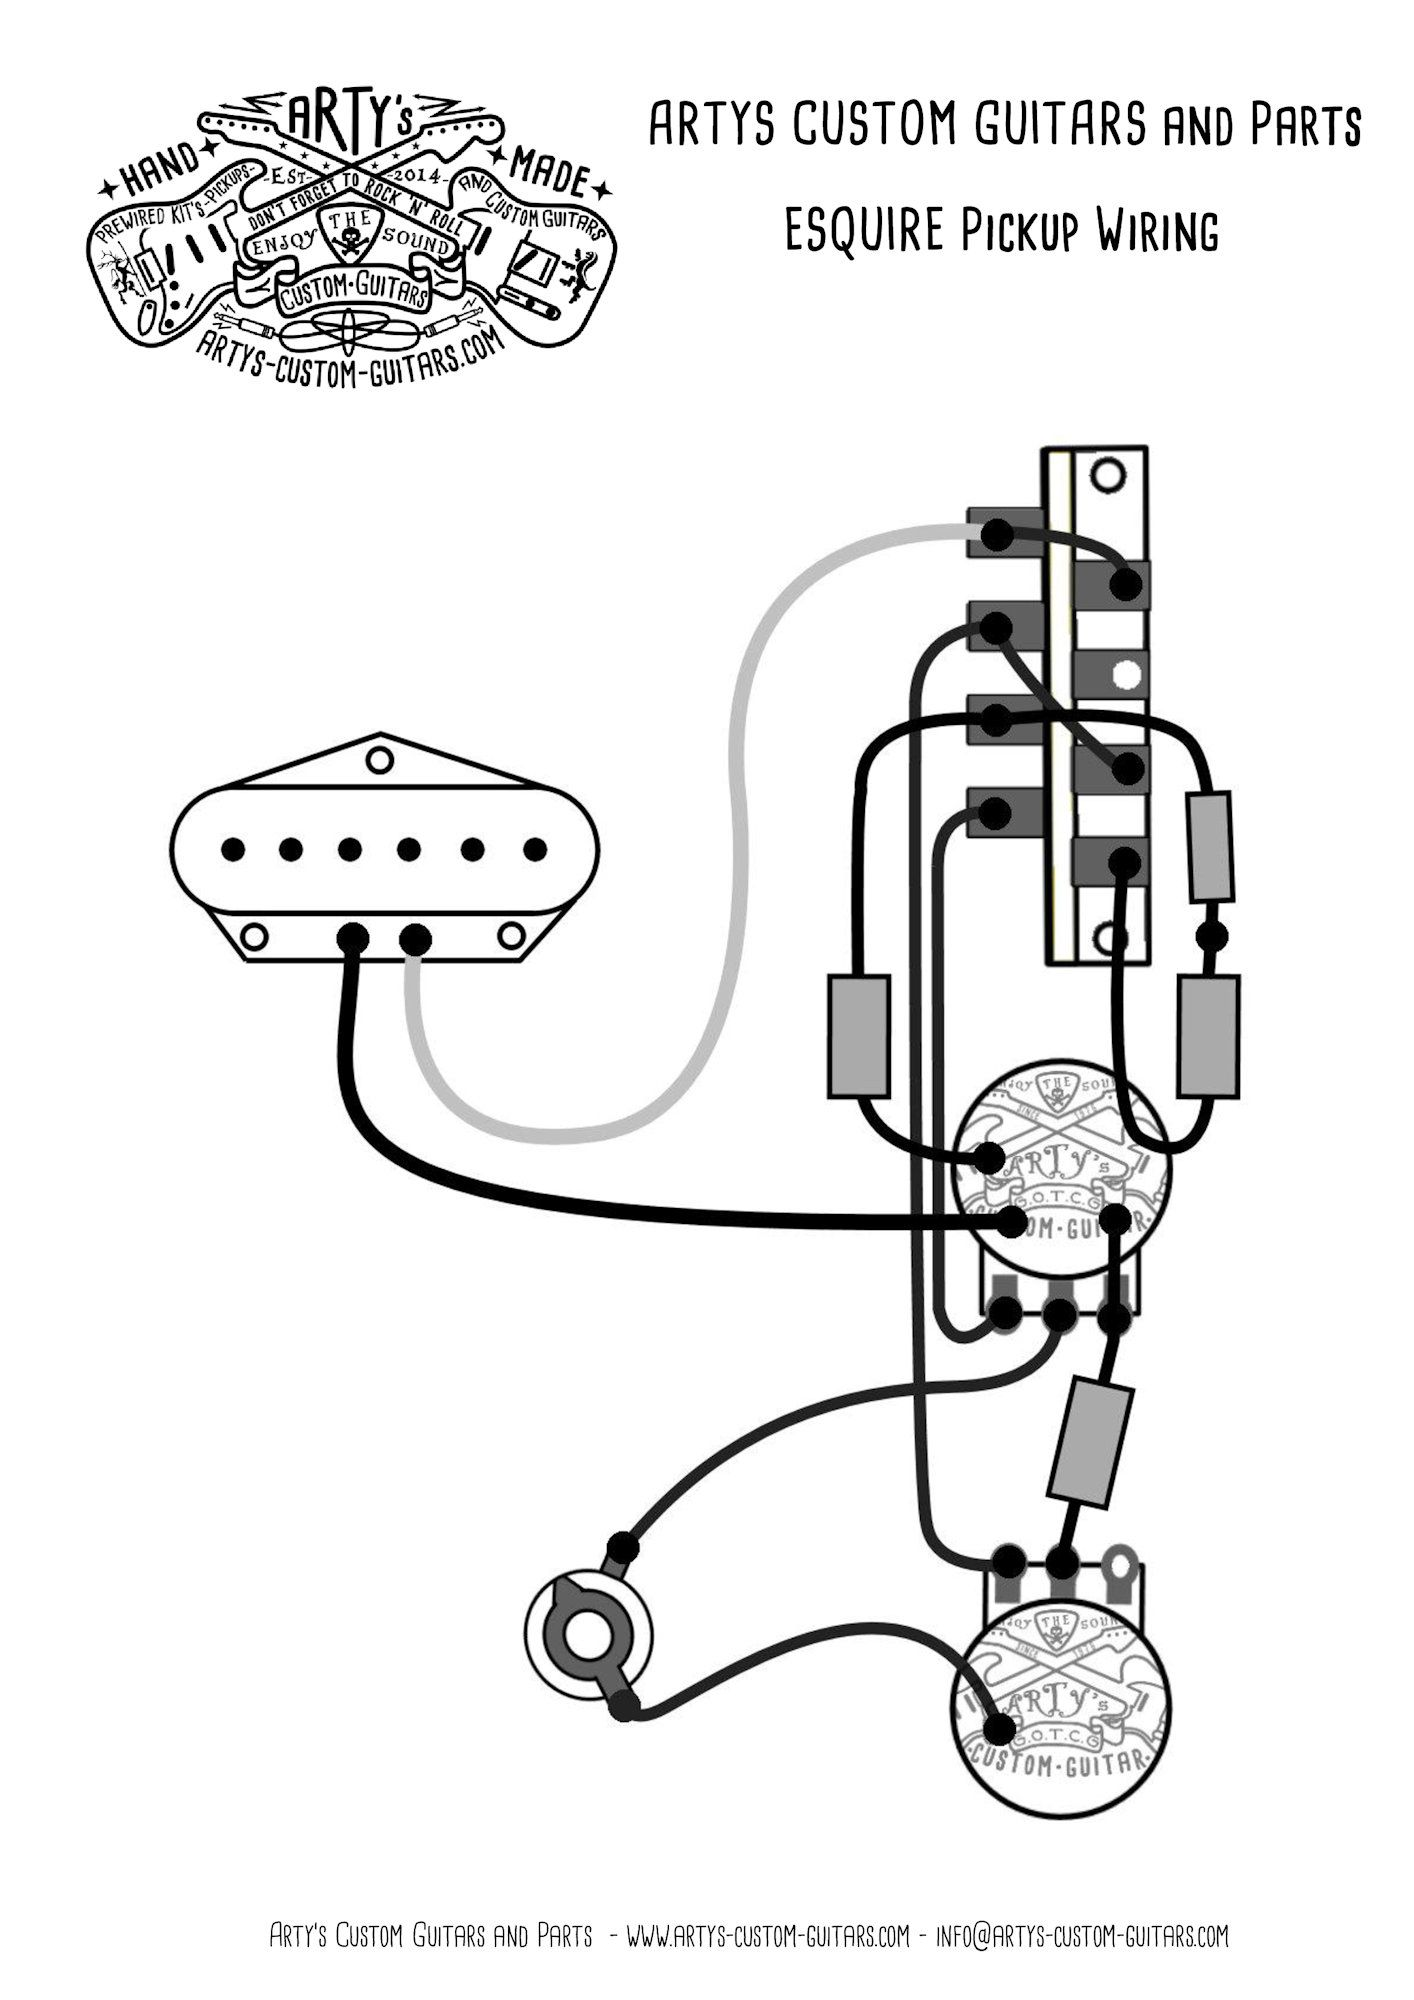 small resolution of esquire wiring diagram prewired kit arty s custom guitars